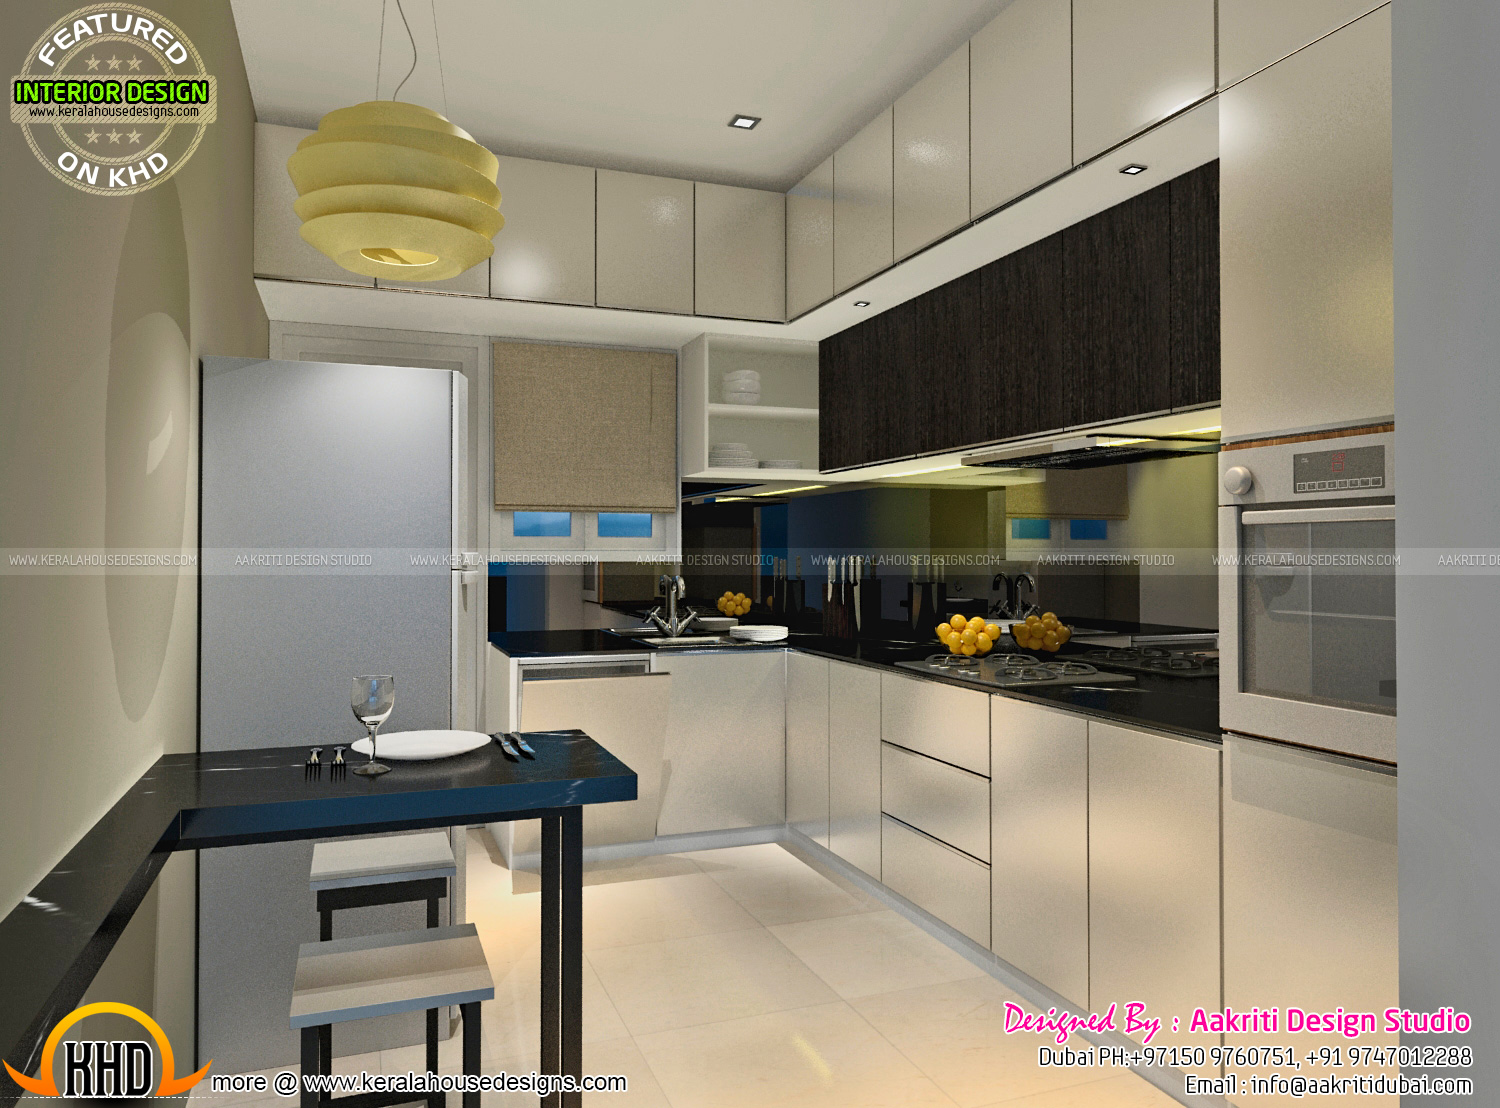 Dining kitchen wash area interior kerala home design for 1 room kitchen interior design